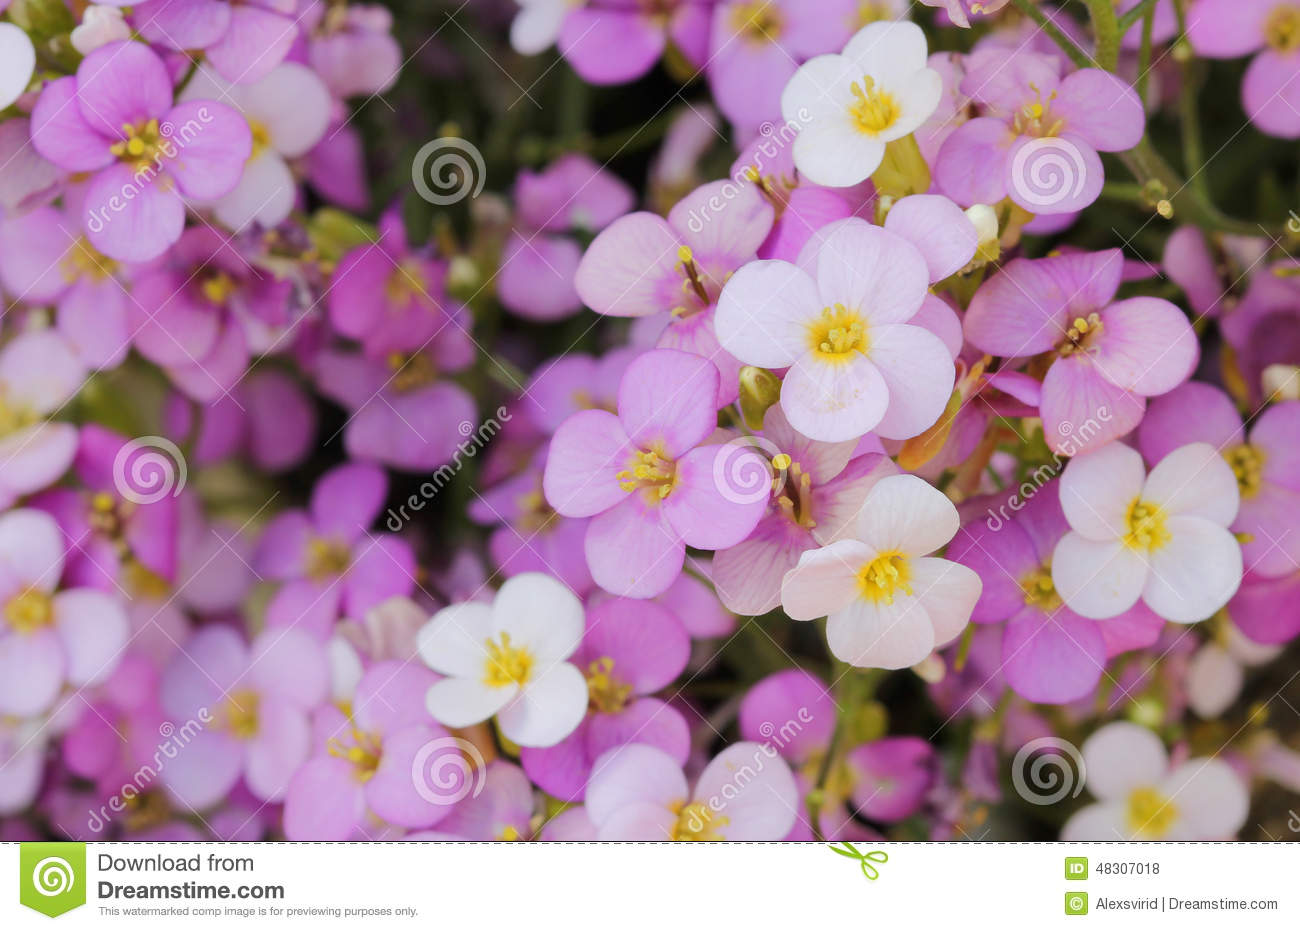 Little pink and white saxifrage flowers stock photo image of bloom download little pink and white saxifrage flowers stock photo image of bloom leaf mightylinksfo